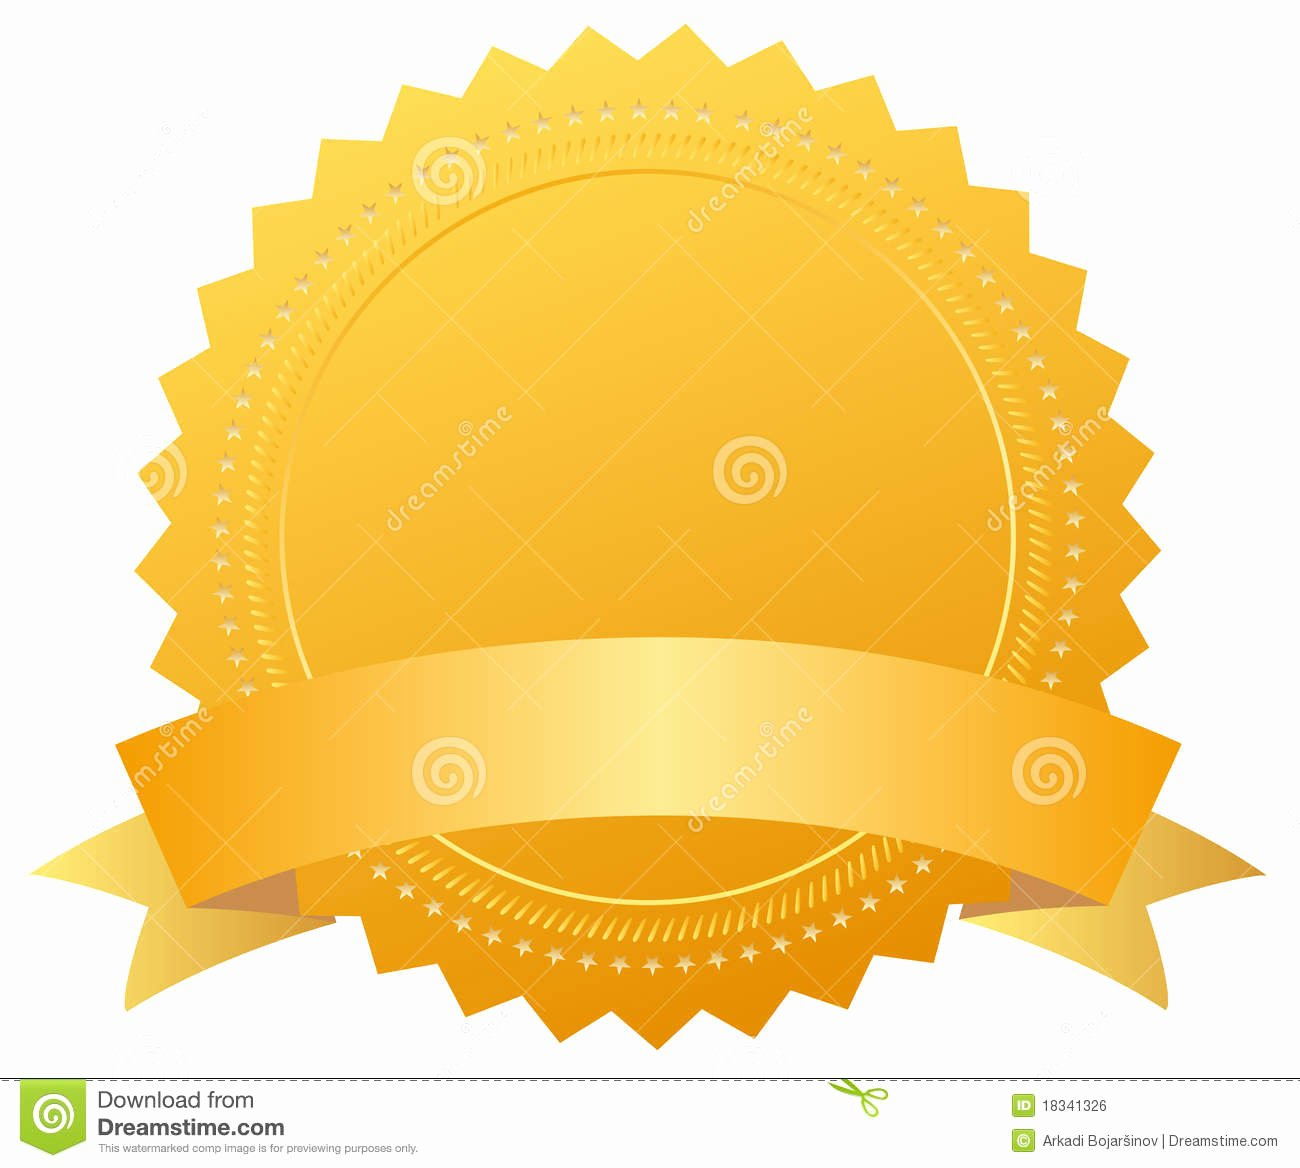 Blank Purple Heart Certificate Beautiful Blank Award Golden Medal Royalty Free Stock Image Image